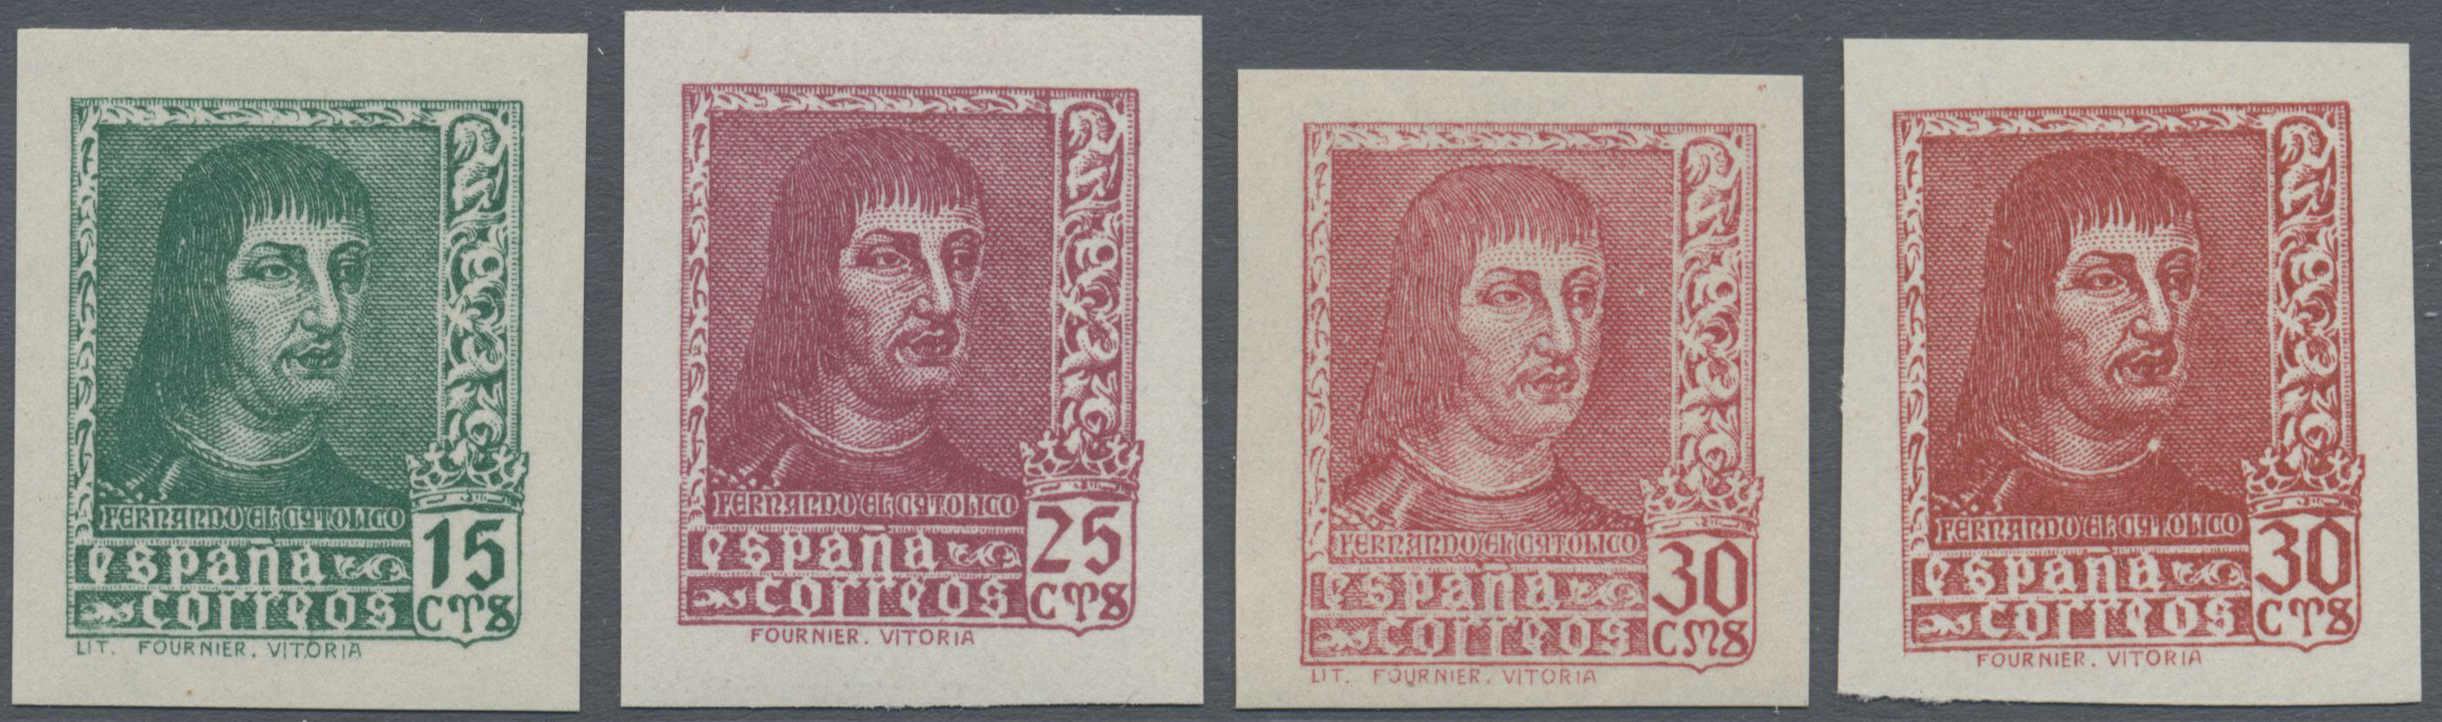 Lot 19239 - spanien  -  Auktionshaus Christoph Gärtner GmbH & Co. KG Sale #48 collections Overseas  Airmail / Ship mail & Thematics